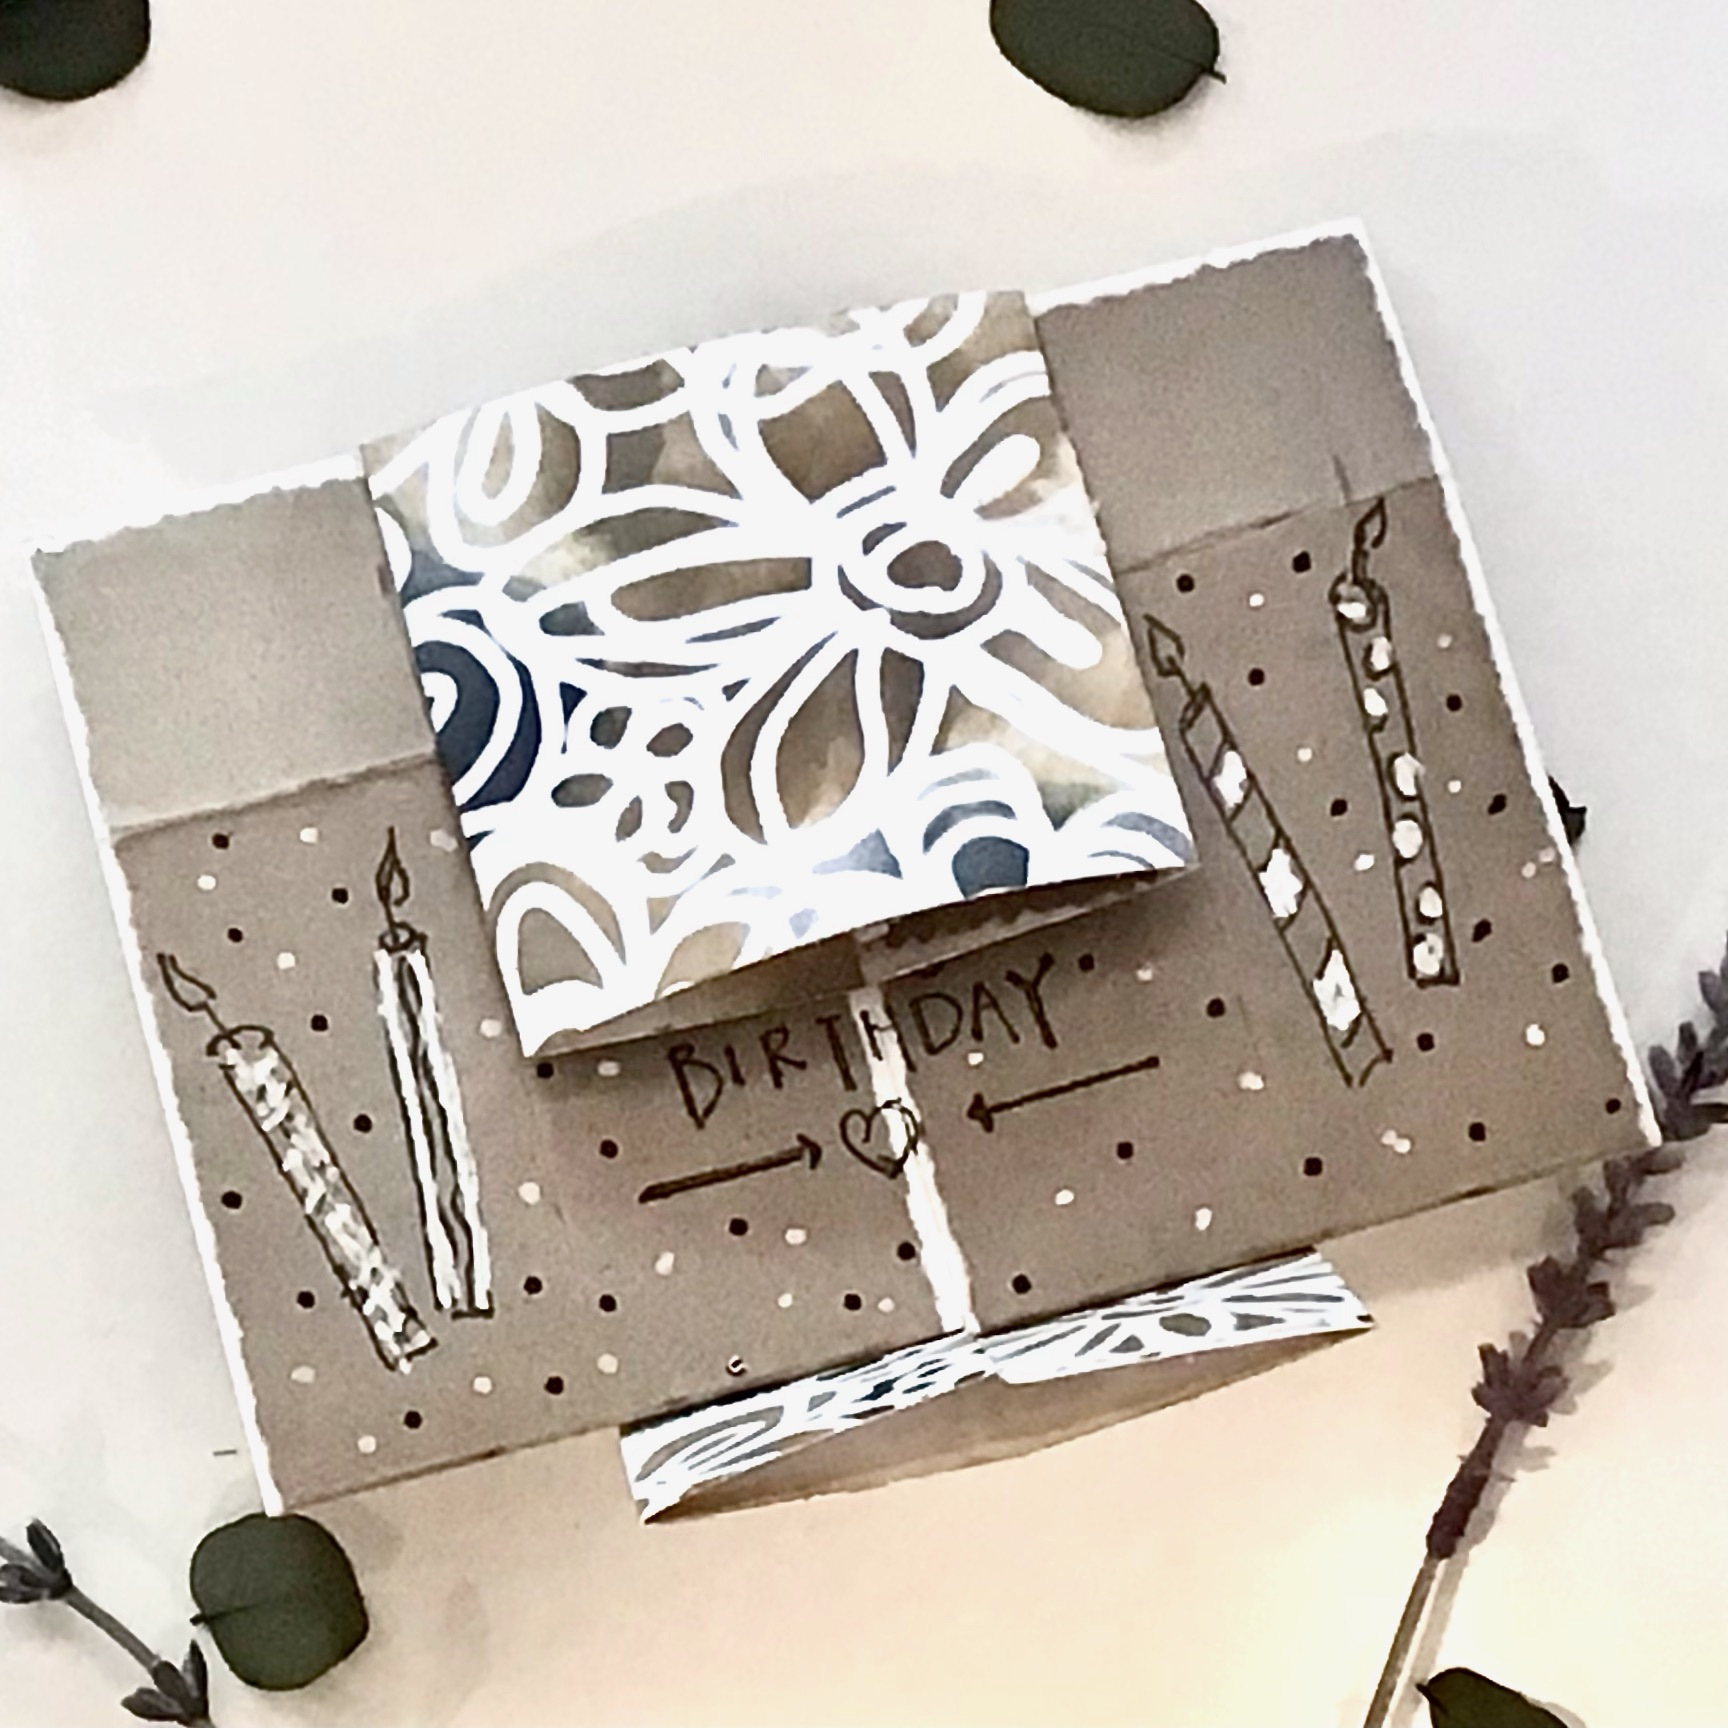 open project birthday card